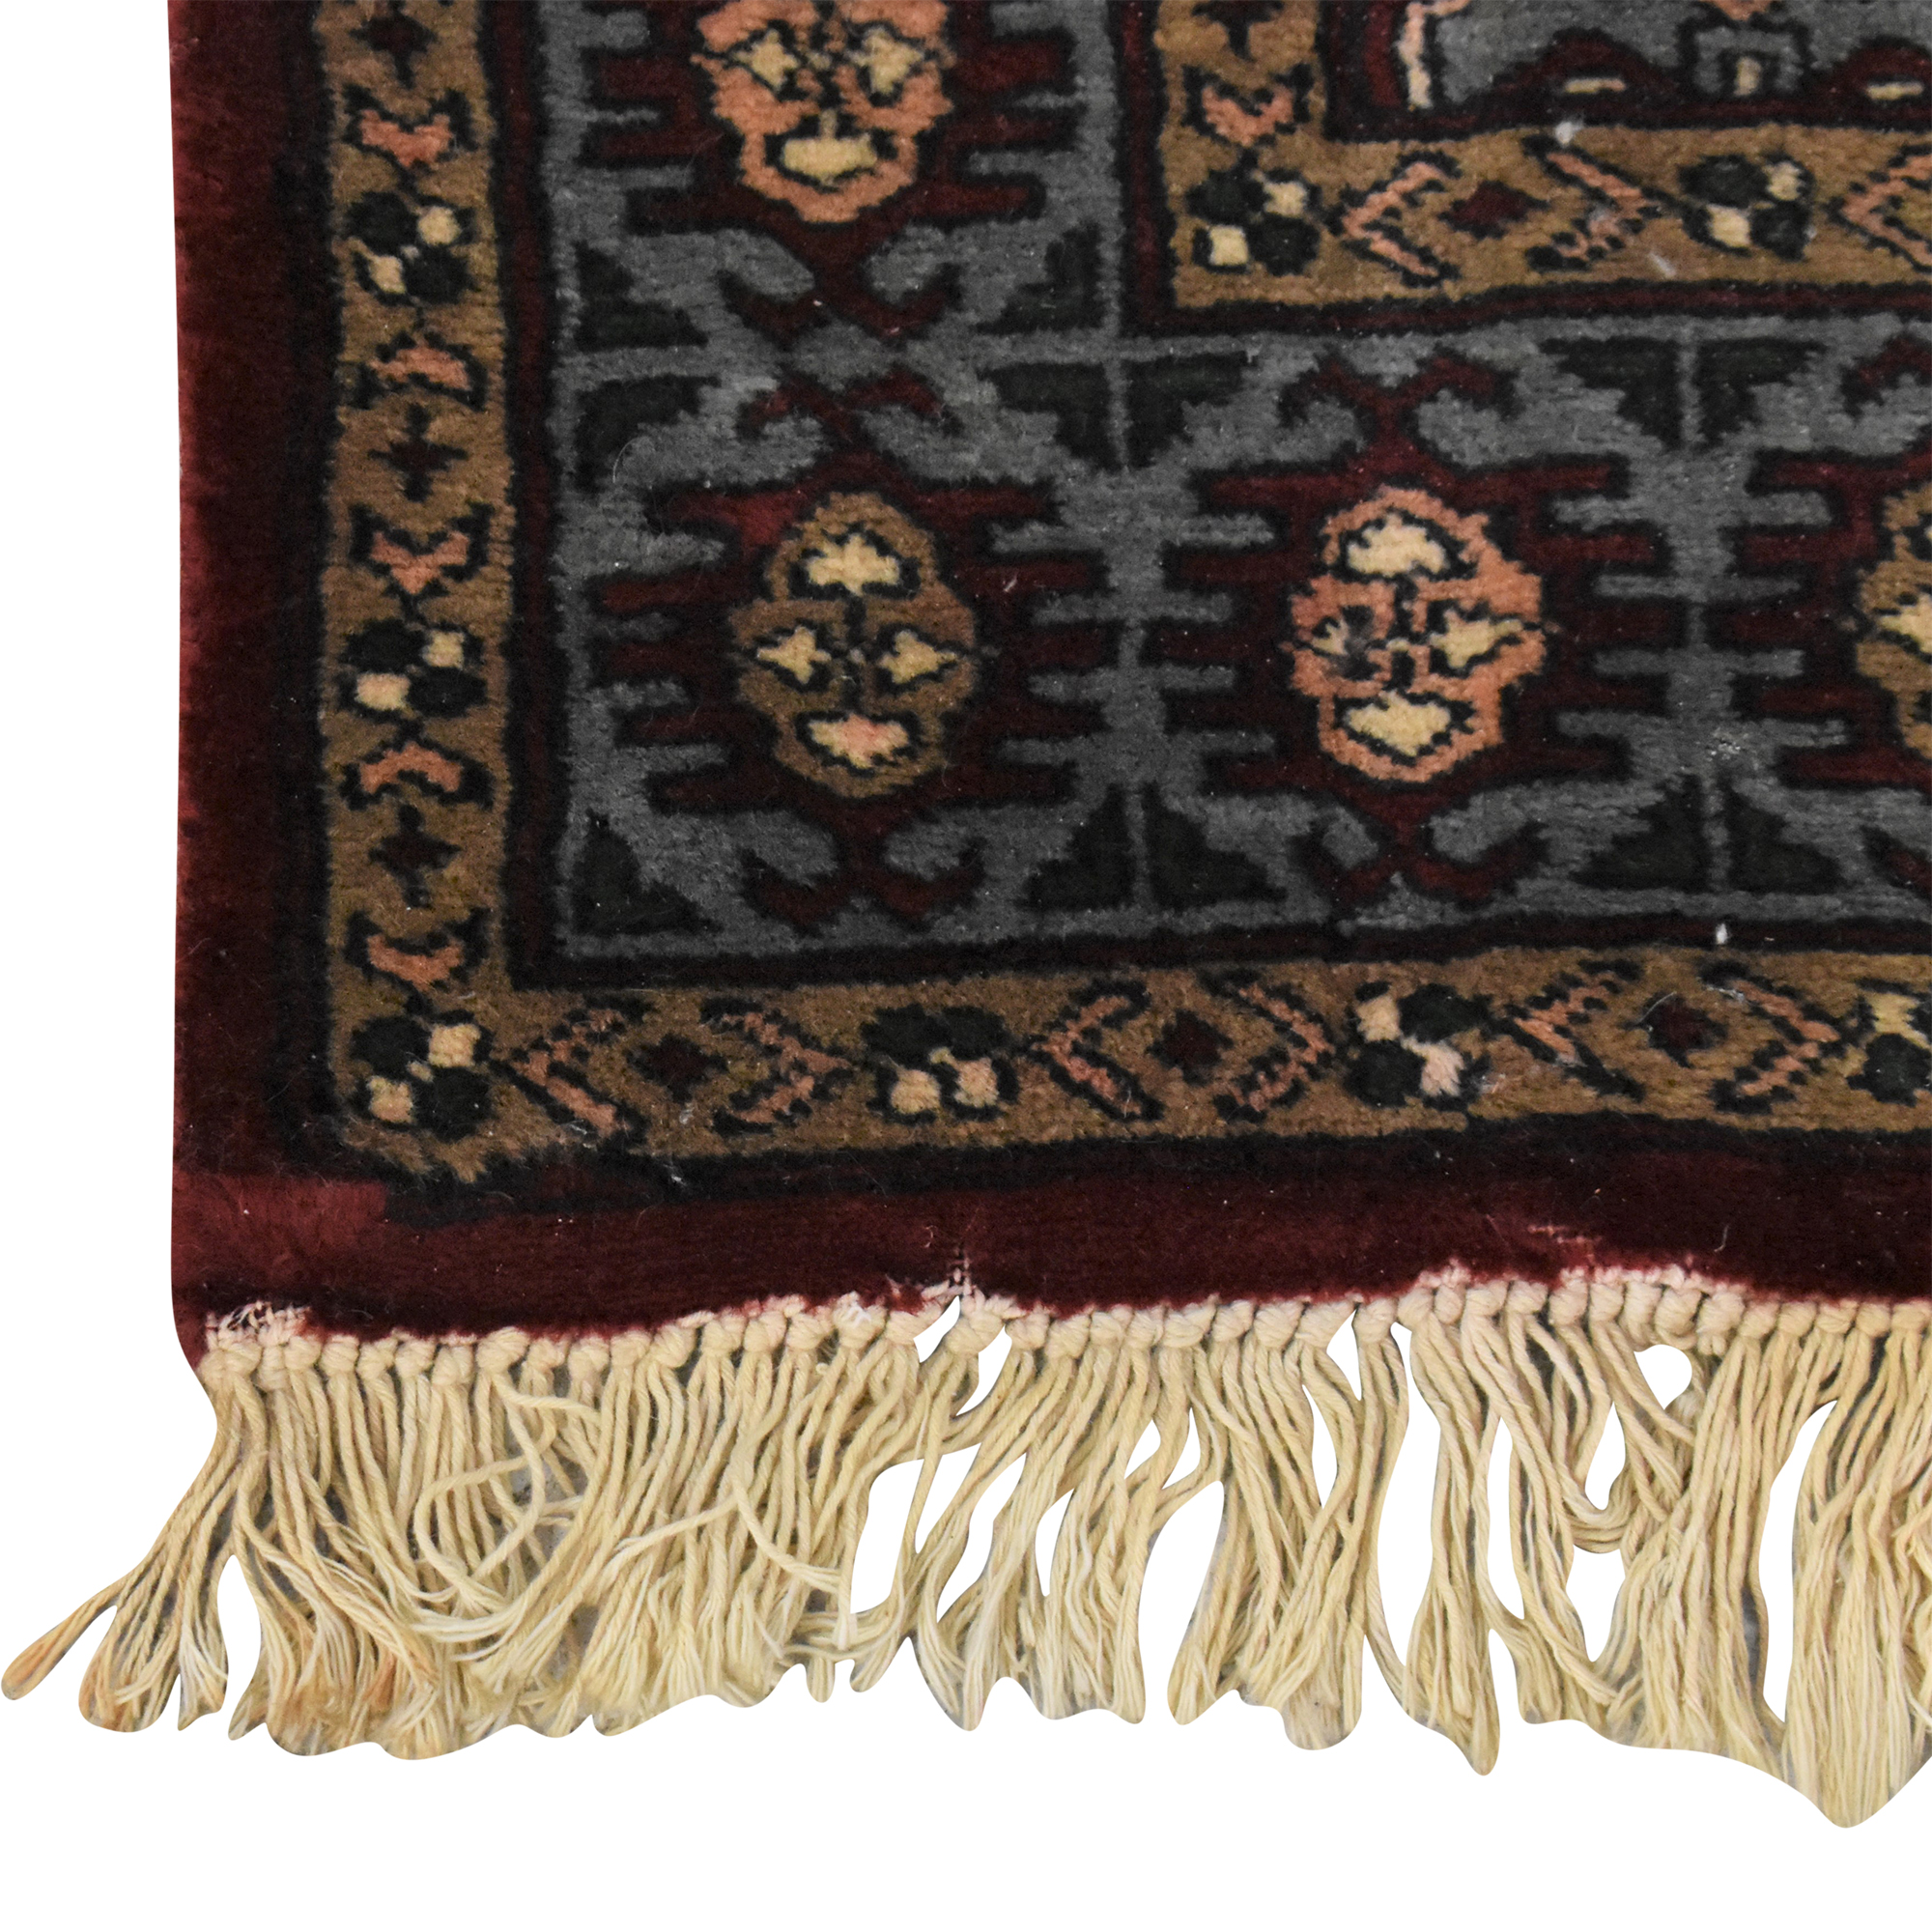 Vintage Persian Rug second hand